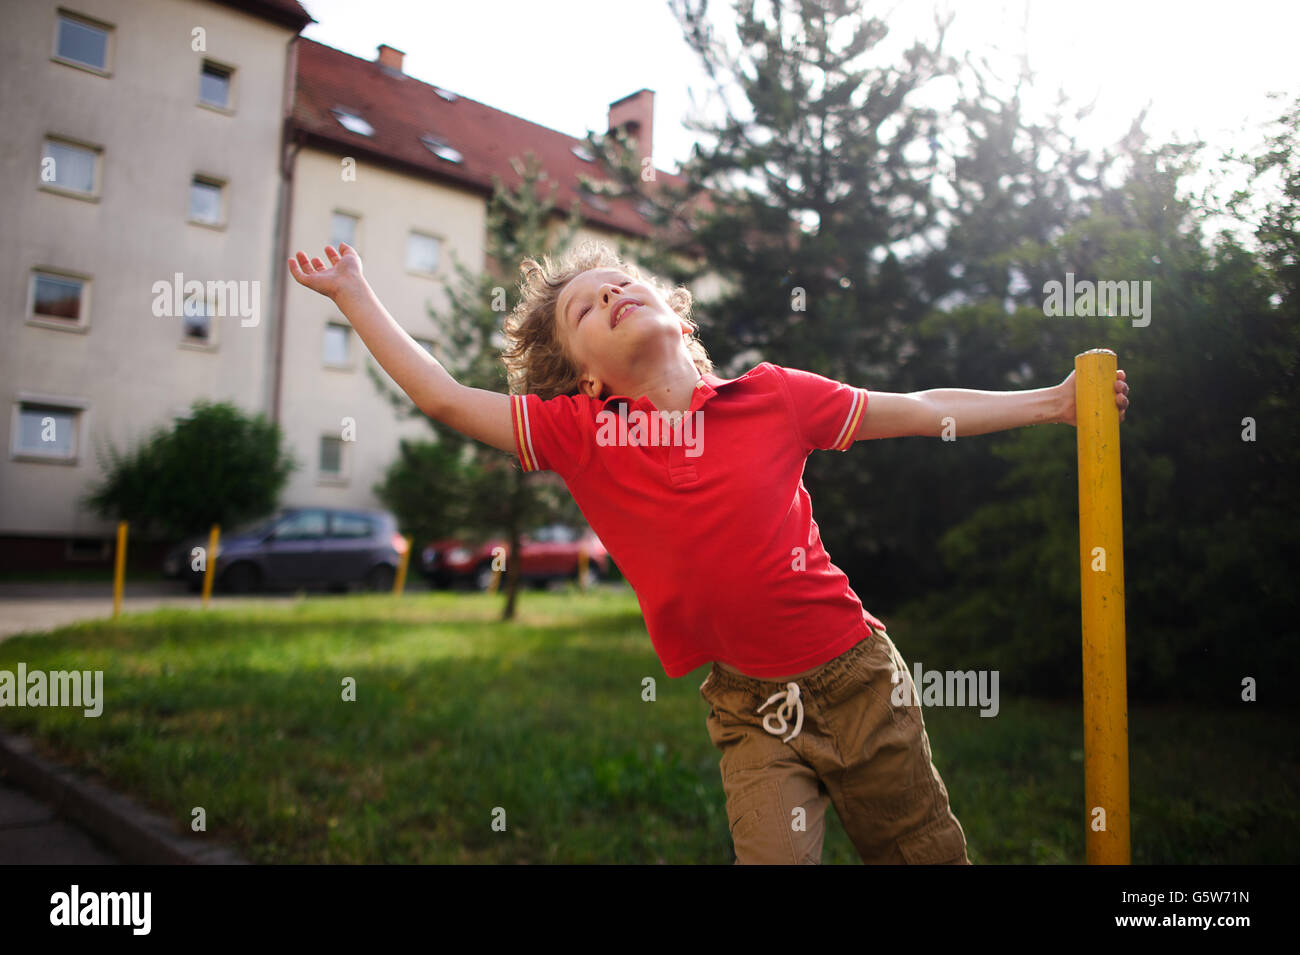 The little boy of 8-9 years turns around a support in the yard of the house. He imagines something during game. - Stock Image